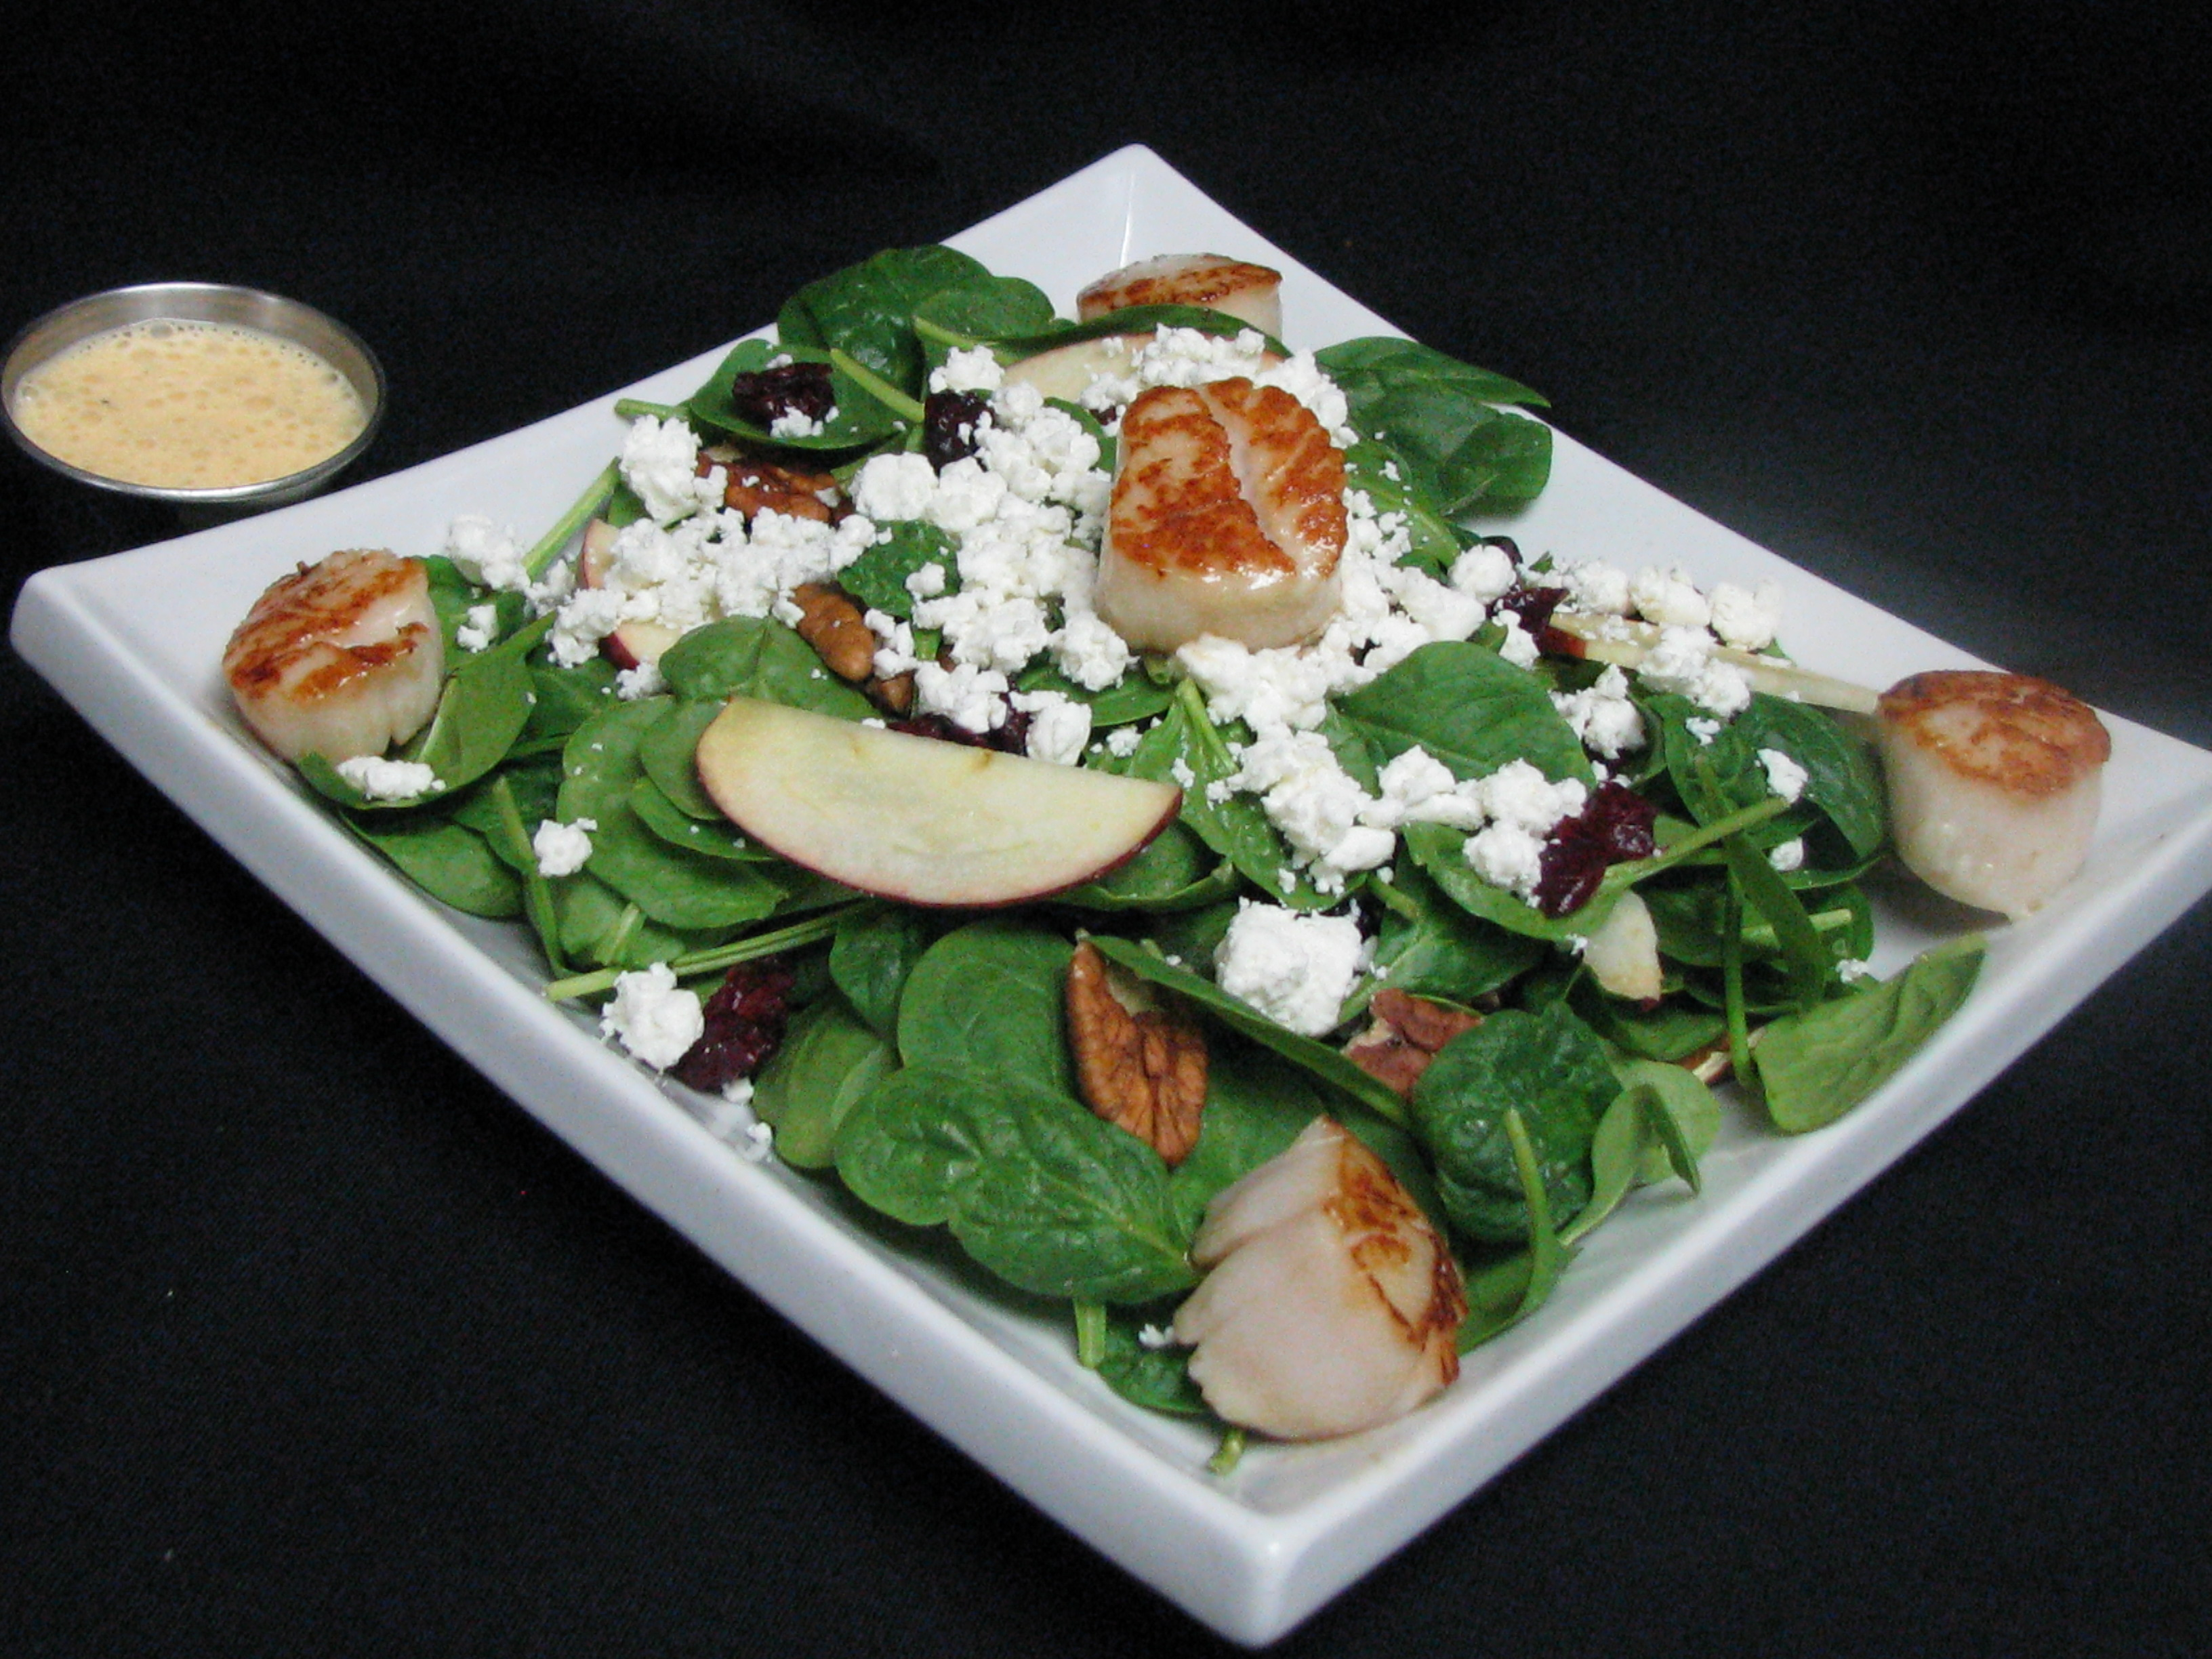 Cranberry apple salad with side scallops